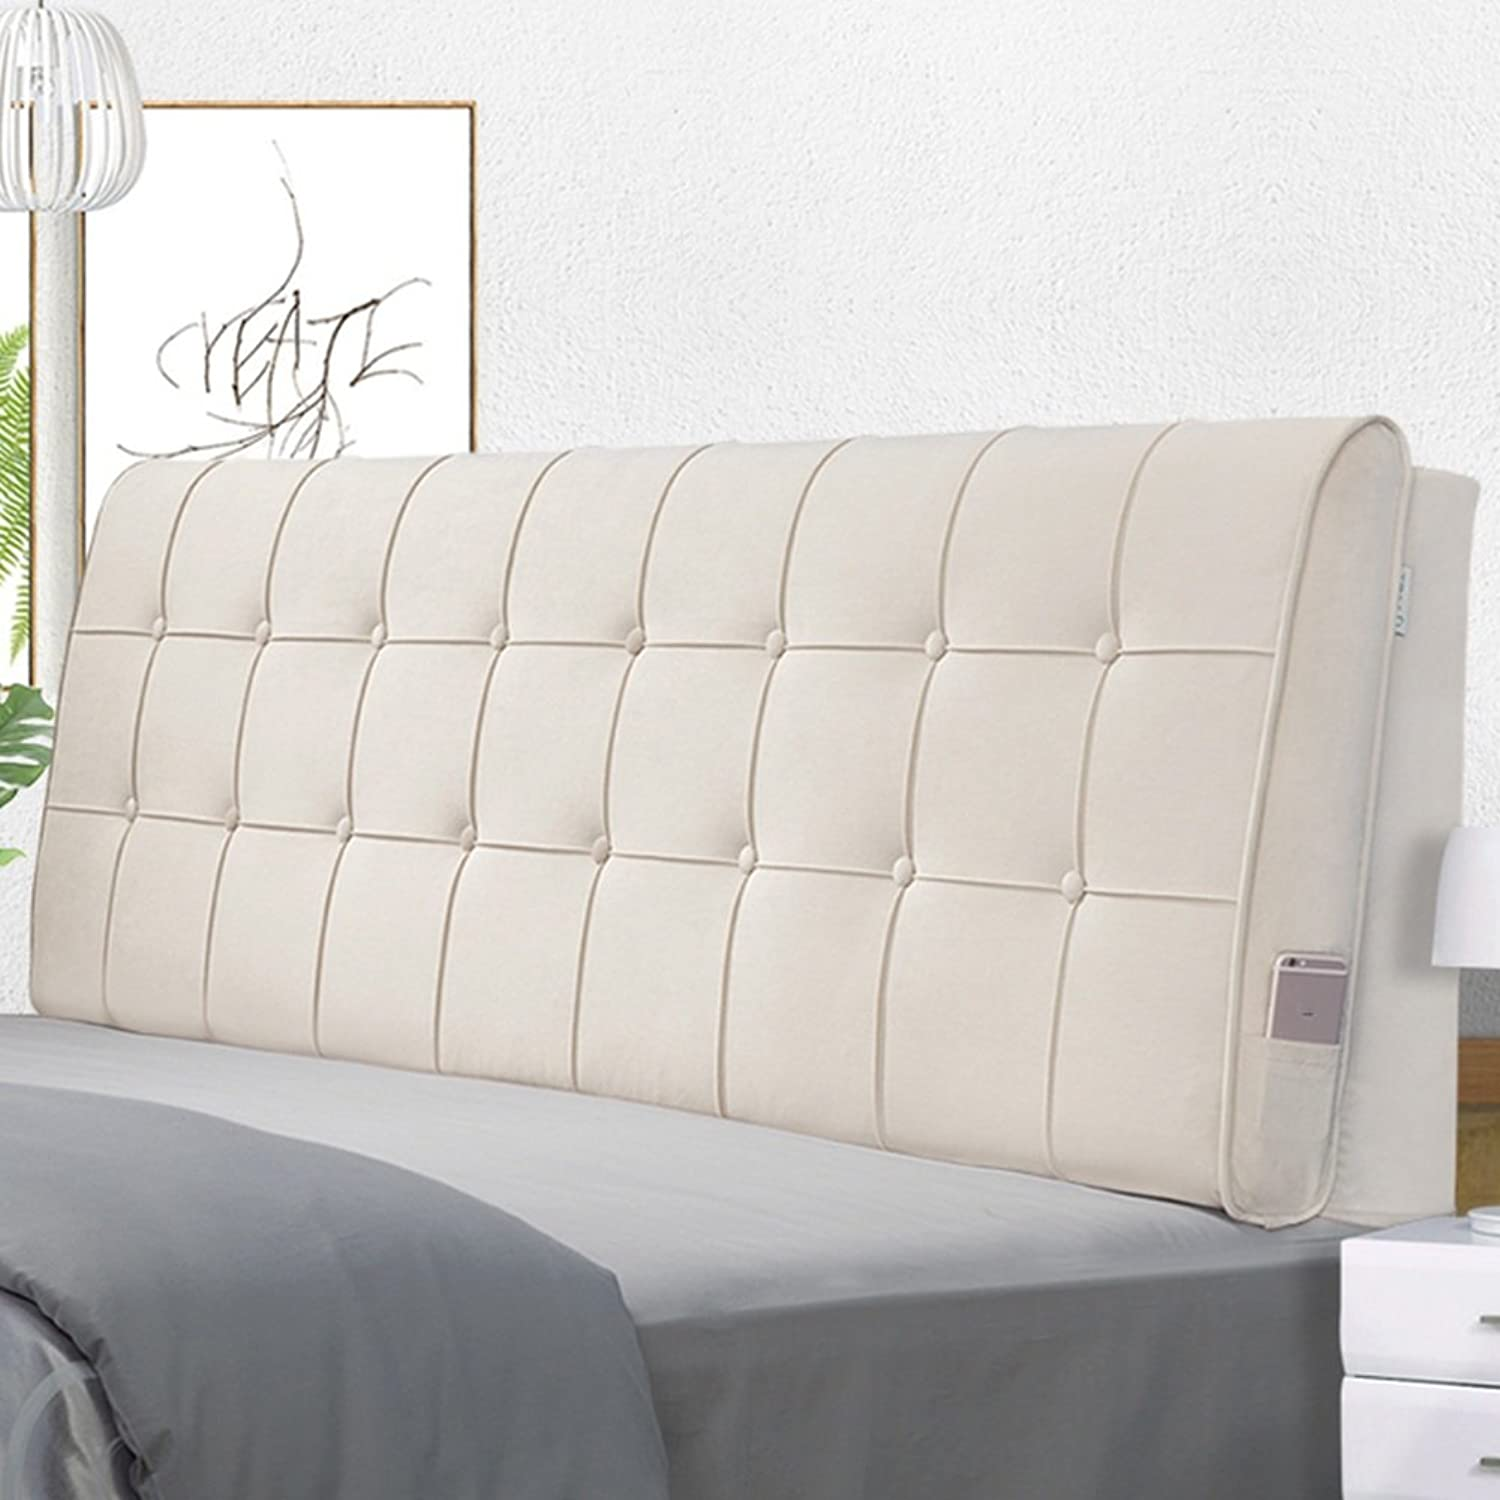 WENZHE Upholstered Fabric Headboard Bedside Cushion Pads Cover Bed Wedges Backrest Waist Pad Cloth Art Large Back Multifunction Soft Case Anti-collision Head, Washable, There Is Headboard   No Headboard, 4 colors, 5 Sizes ( color   2 -NO headboard , Size